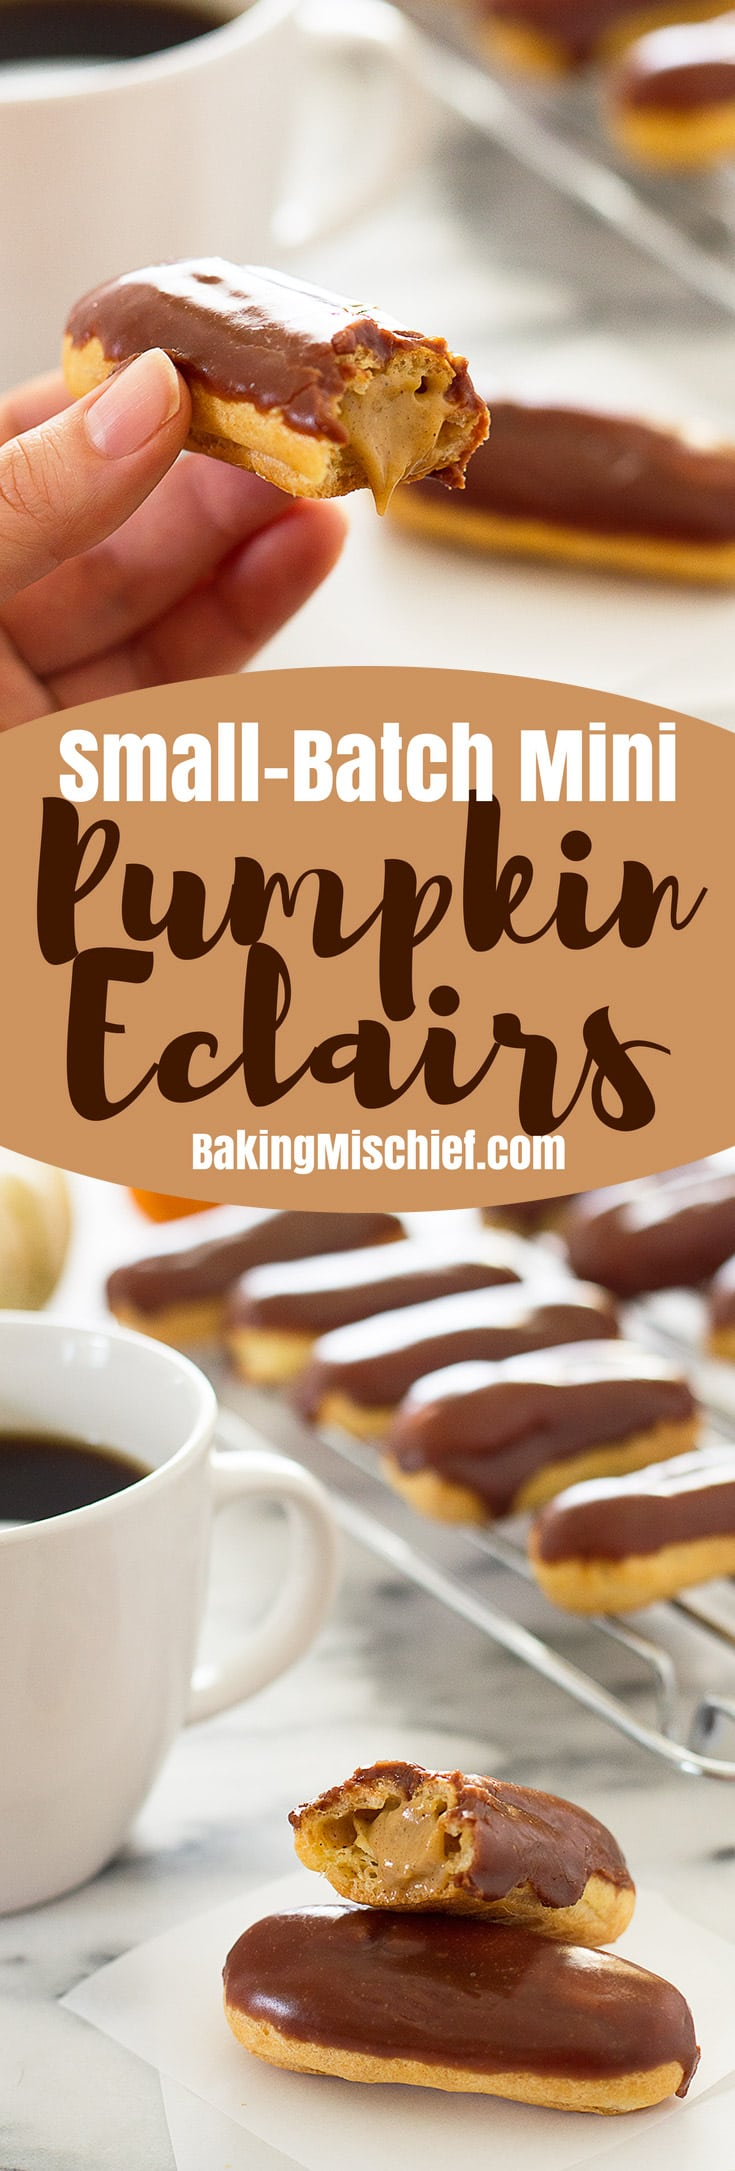 These cute and delicious Mini Pumpkin Eclairs are topped with chocolate glaze and filled with rich pumpkin pastry cream. Recipe includes nutritional information. From BakingMischief.com